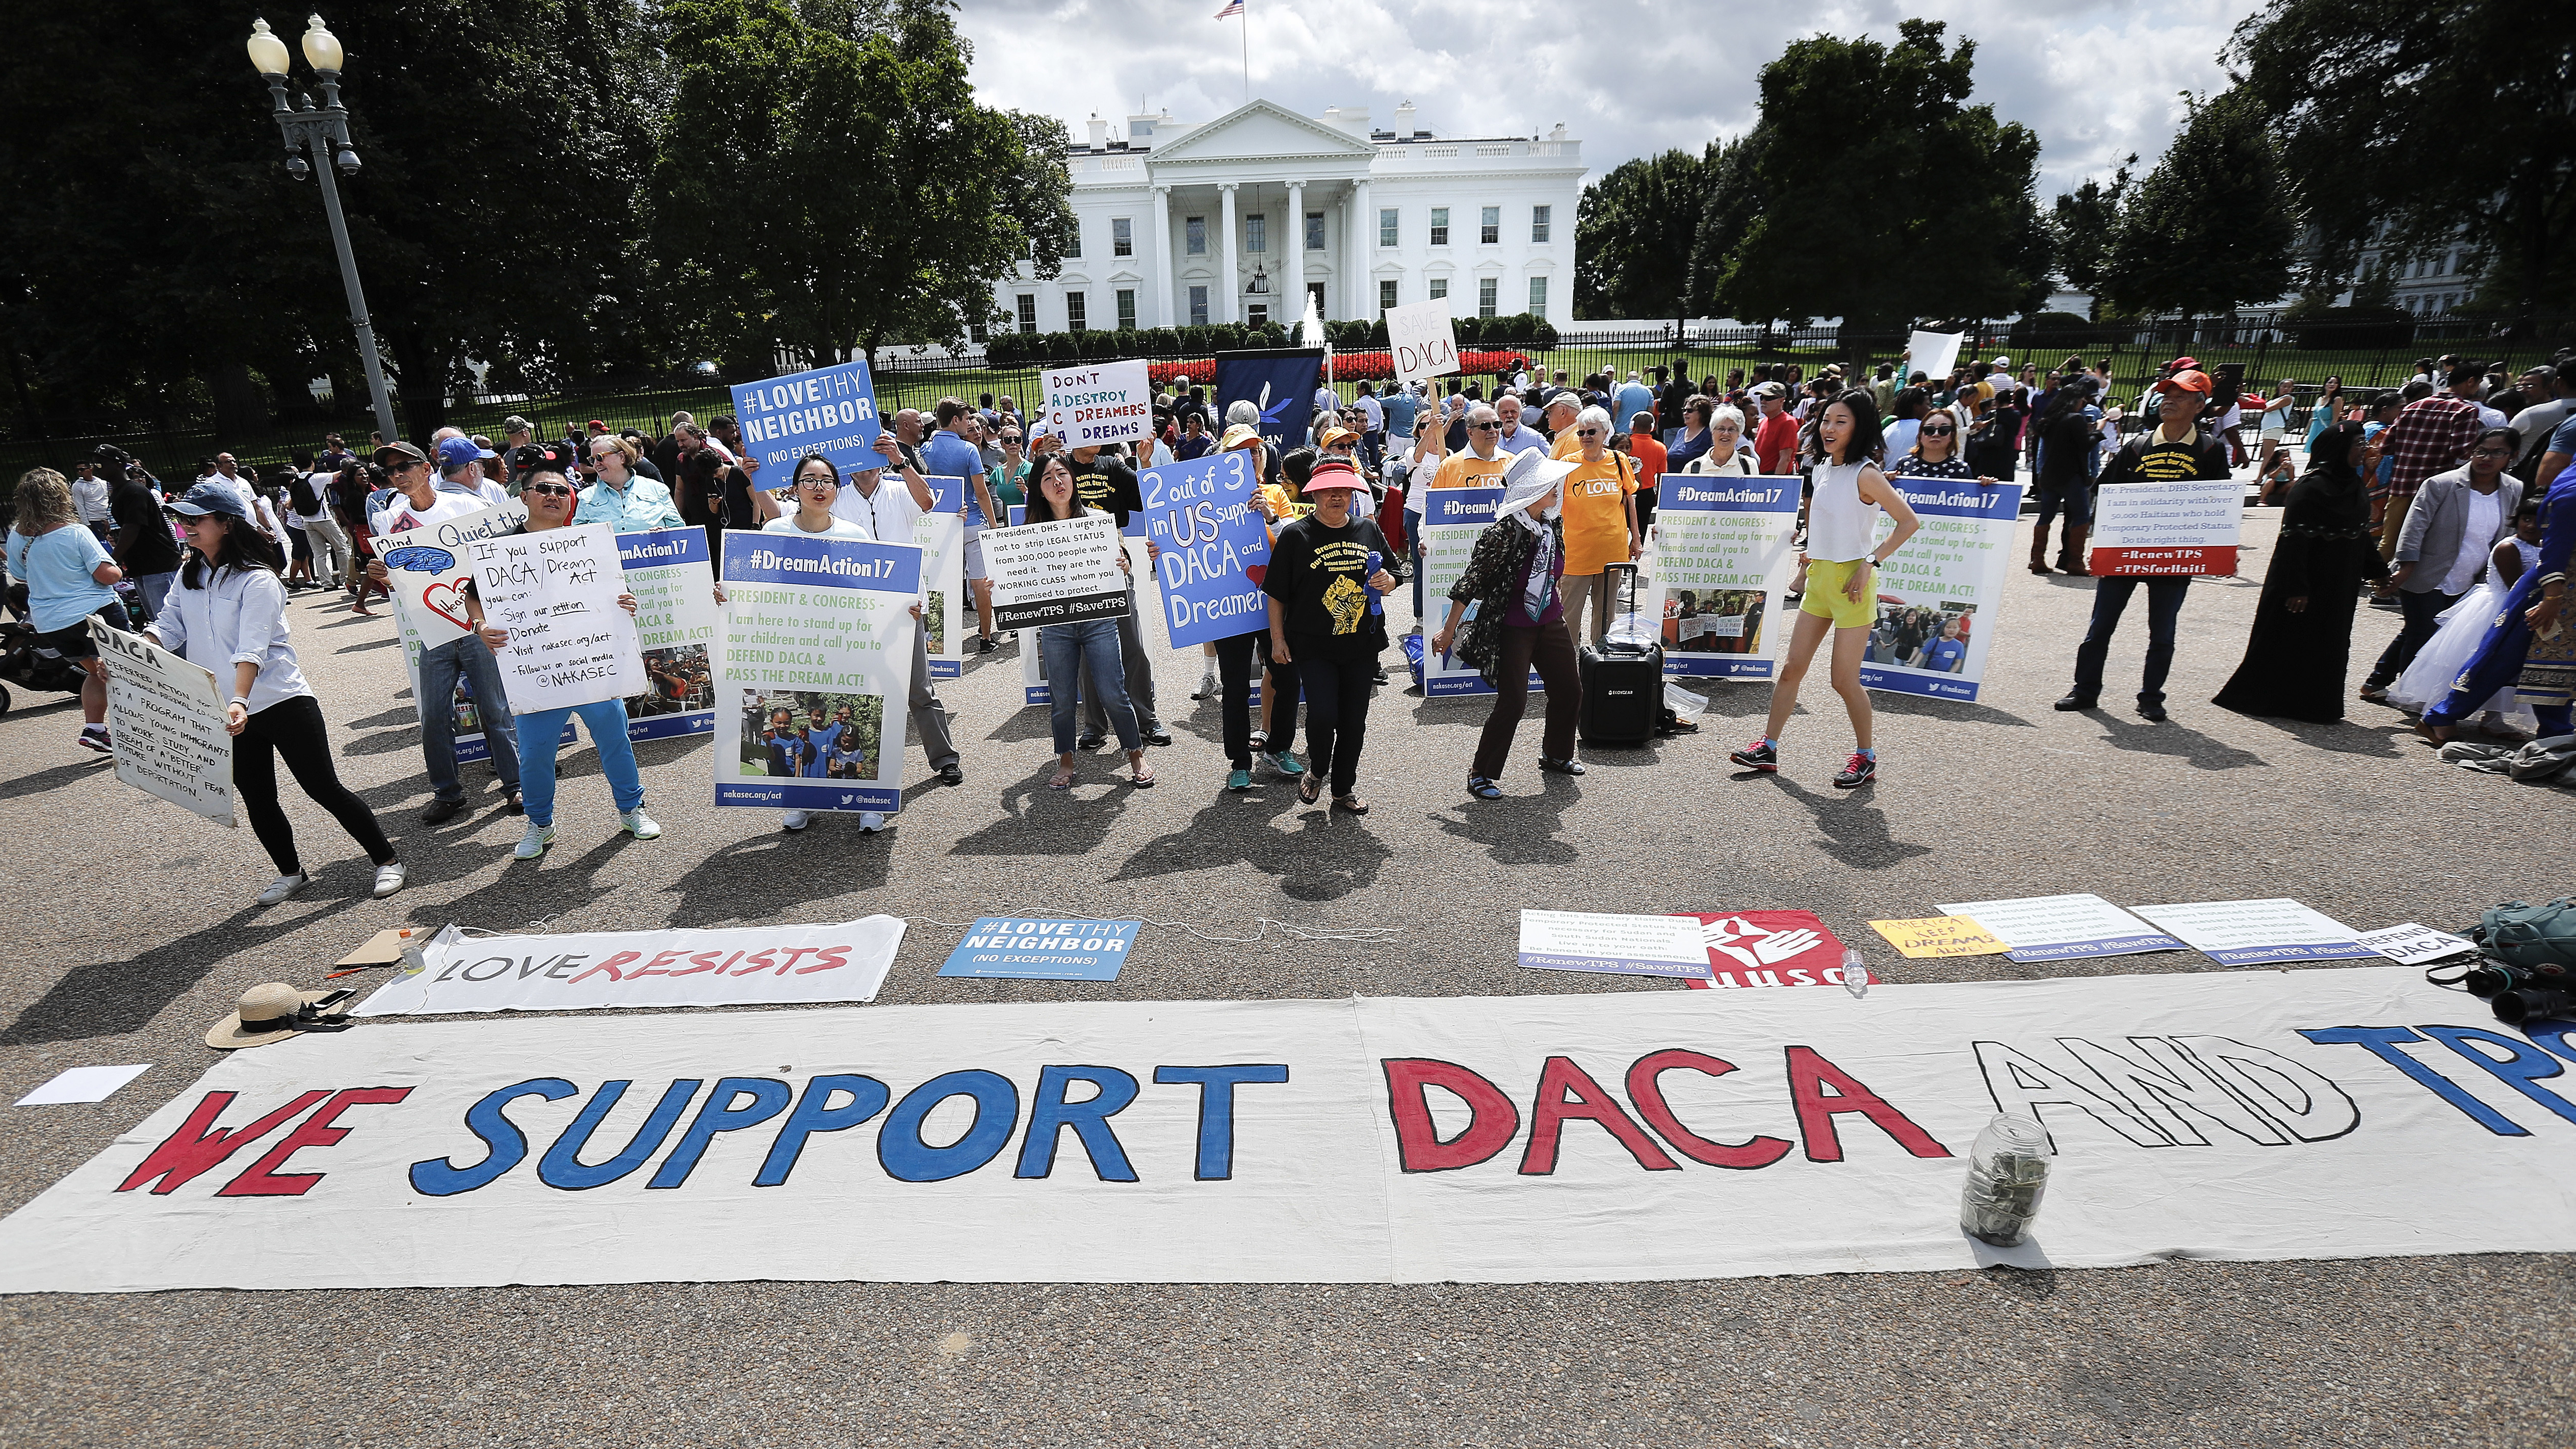 Supporters of Deferred Action for Childhood Arrivals program (DACA), demonstrate on Pennsylvania Avenue in front of the White House in Washington, D.C., on Sept. 3, 2017.